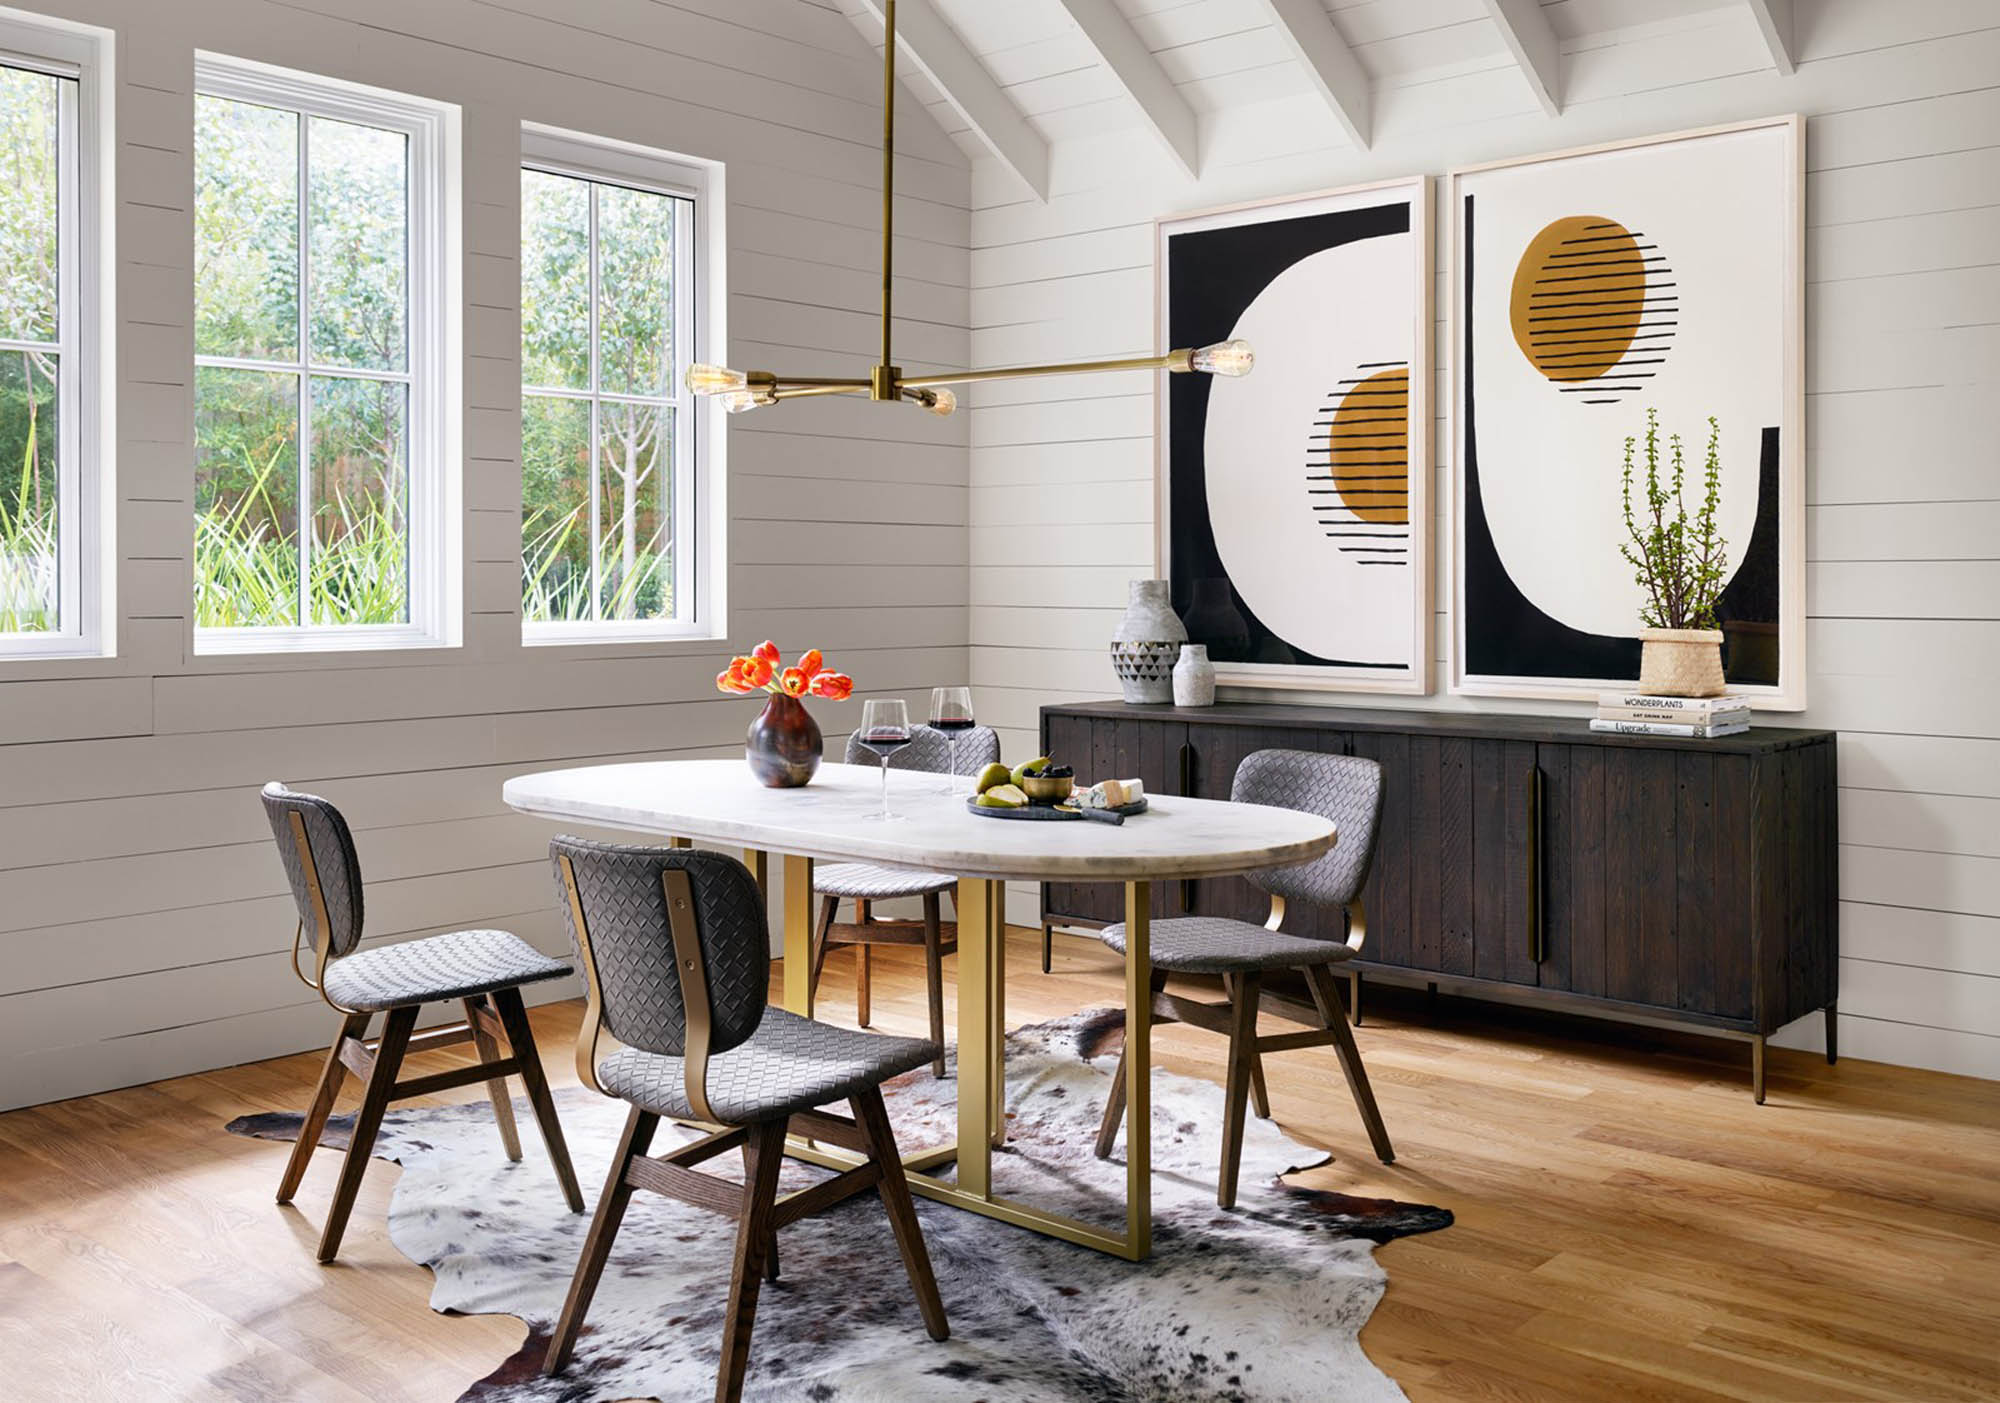 top interior designer designs modern dining room with small table and gold accents